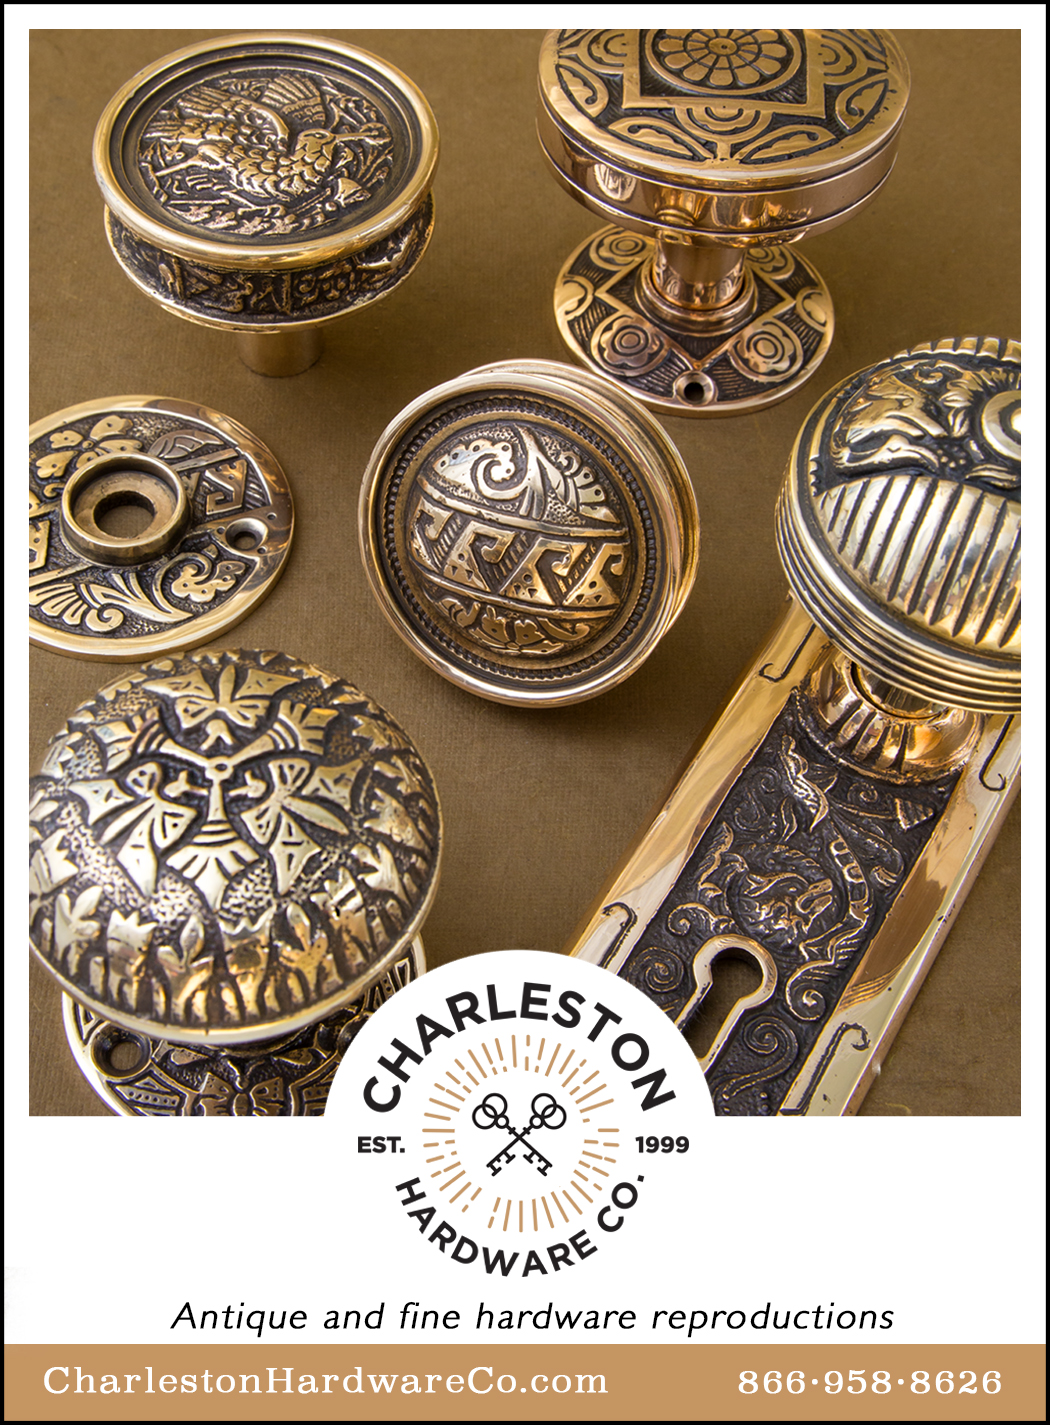 - Antique Restoration Hardware & Decorative Hardware Charleston Hardwa